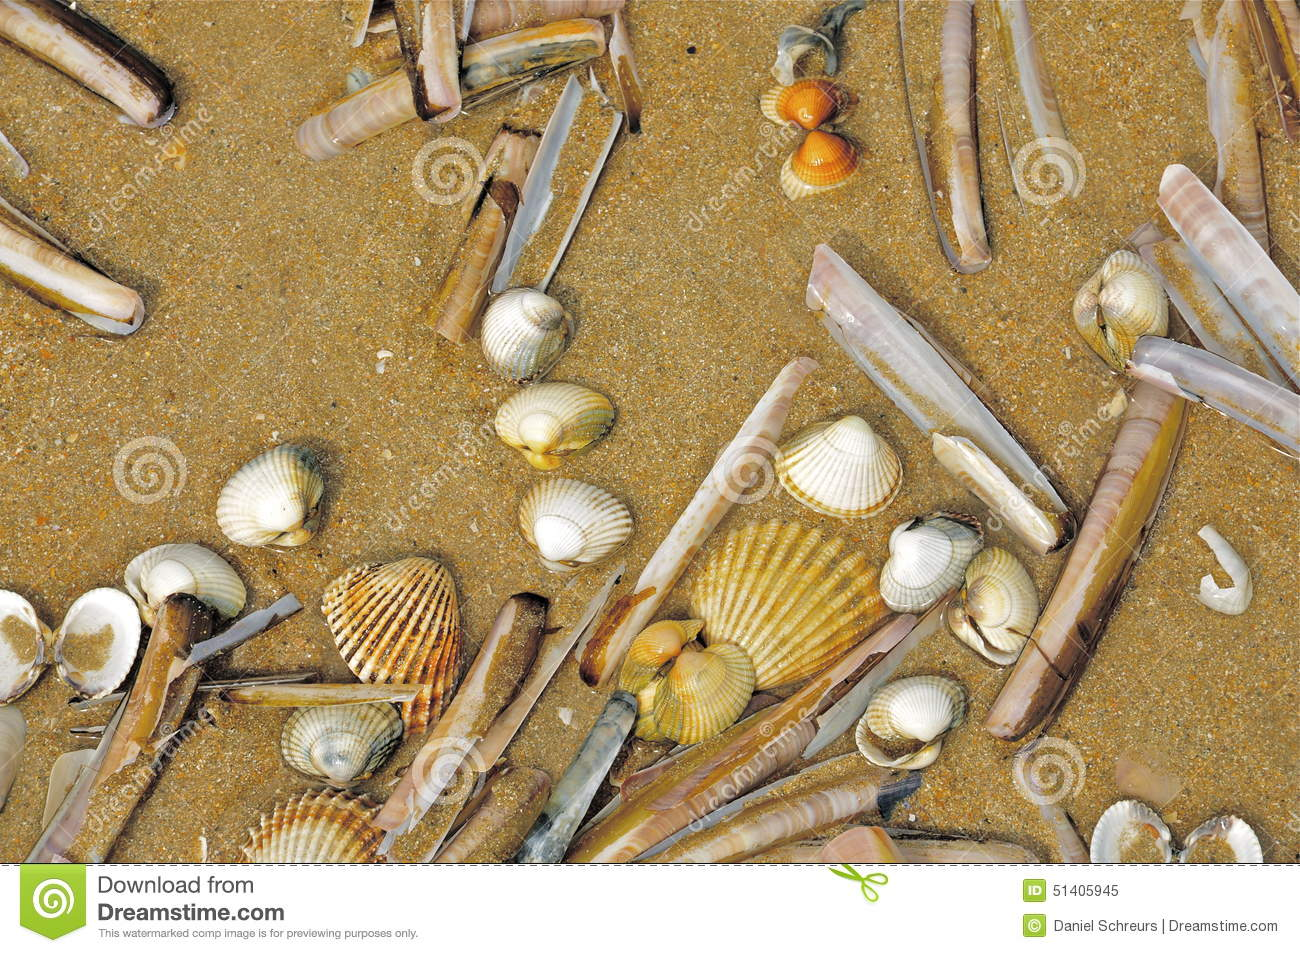 Various Clams and Shells on a Beach in Normandy, France